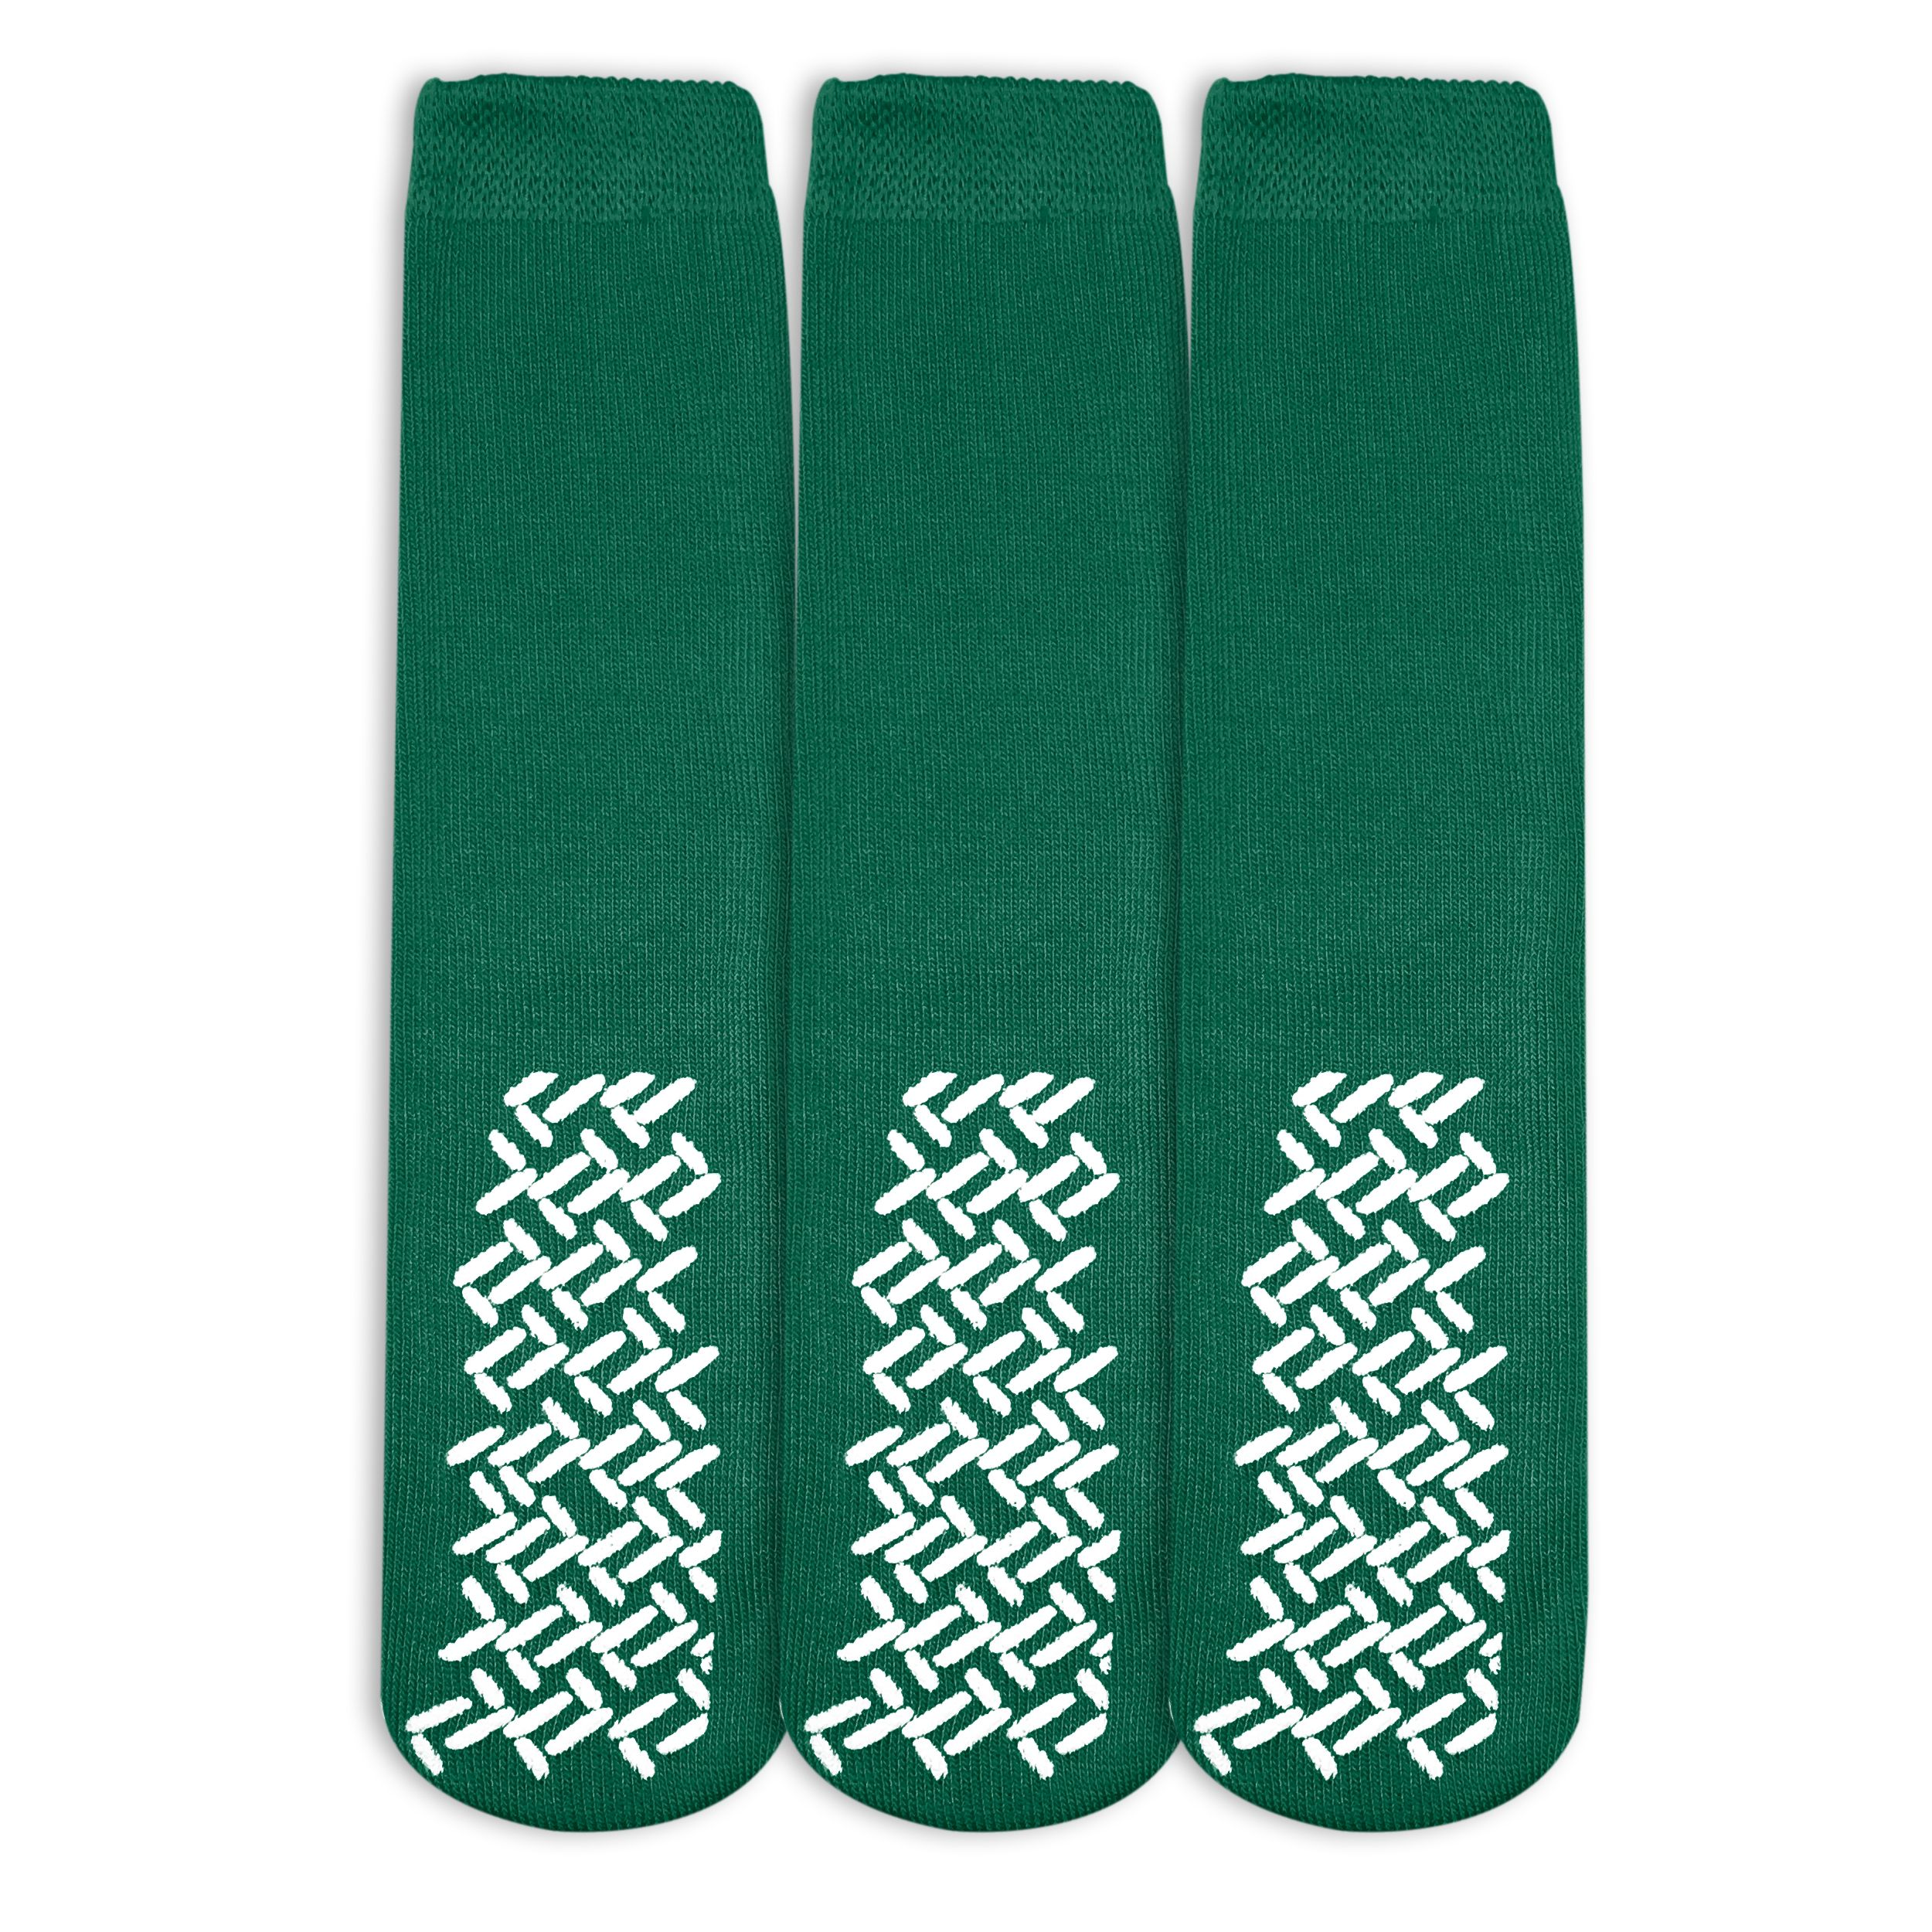 Nobles Assorted Anti Skid/ No Slip Hospital Gripper Socks, Great for adults, men, women. Designed for medical hospital patients but great for everyone (3 Pairs Black)